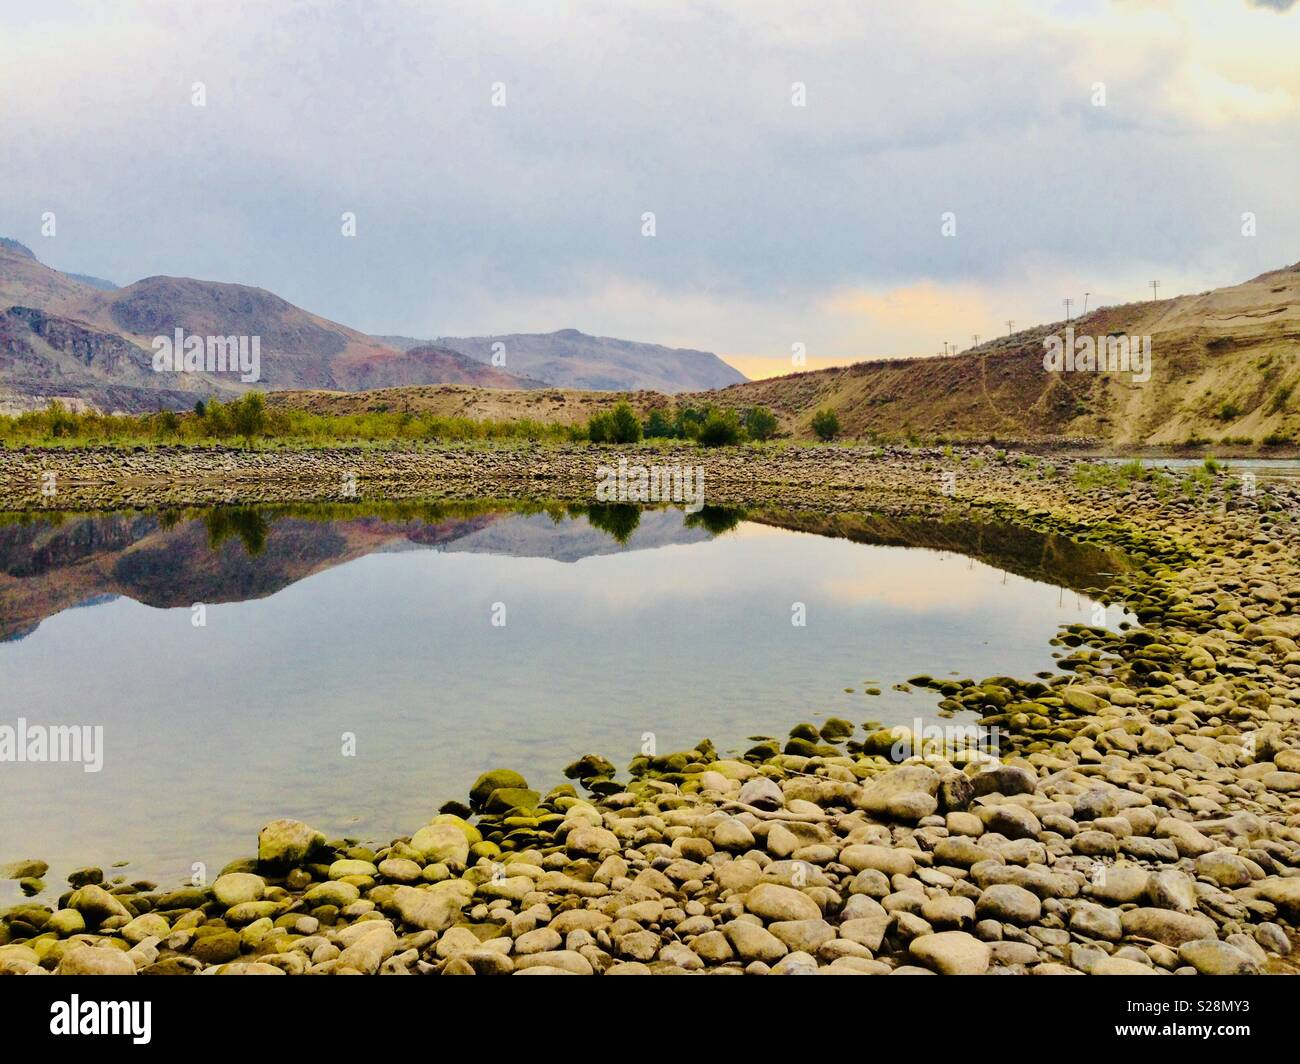 Stark landscape in Canada with pebbles and lake with hills in background - Stock Image